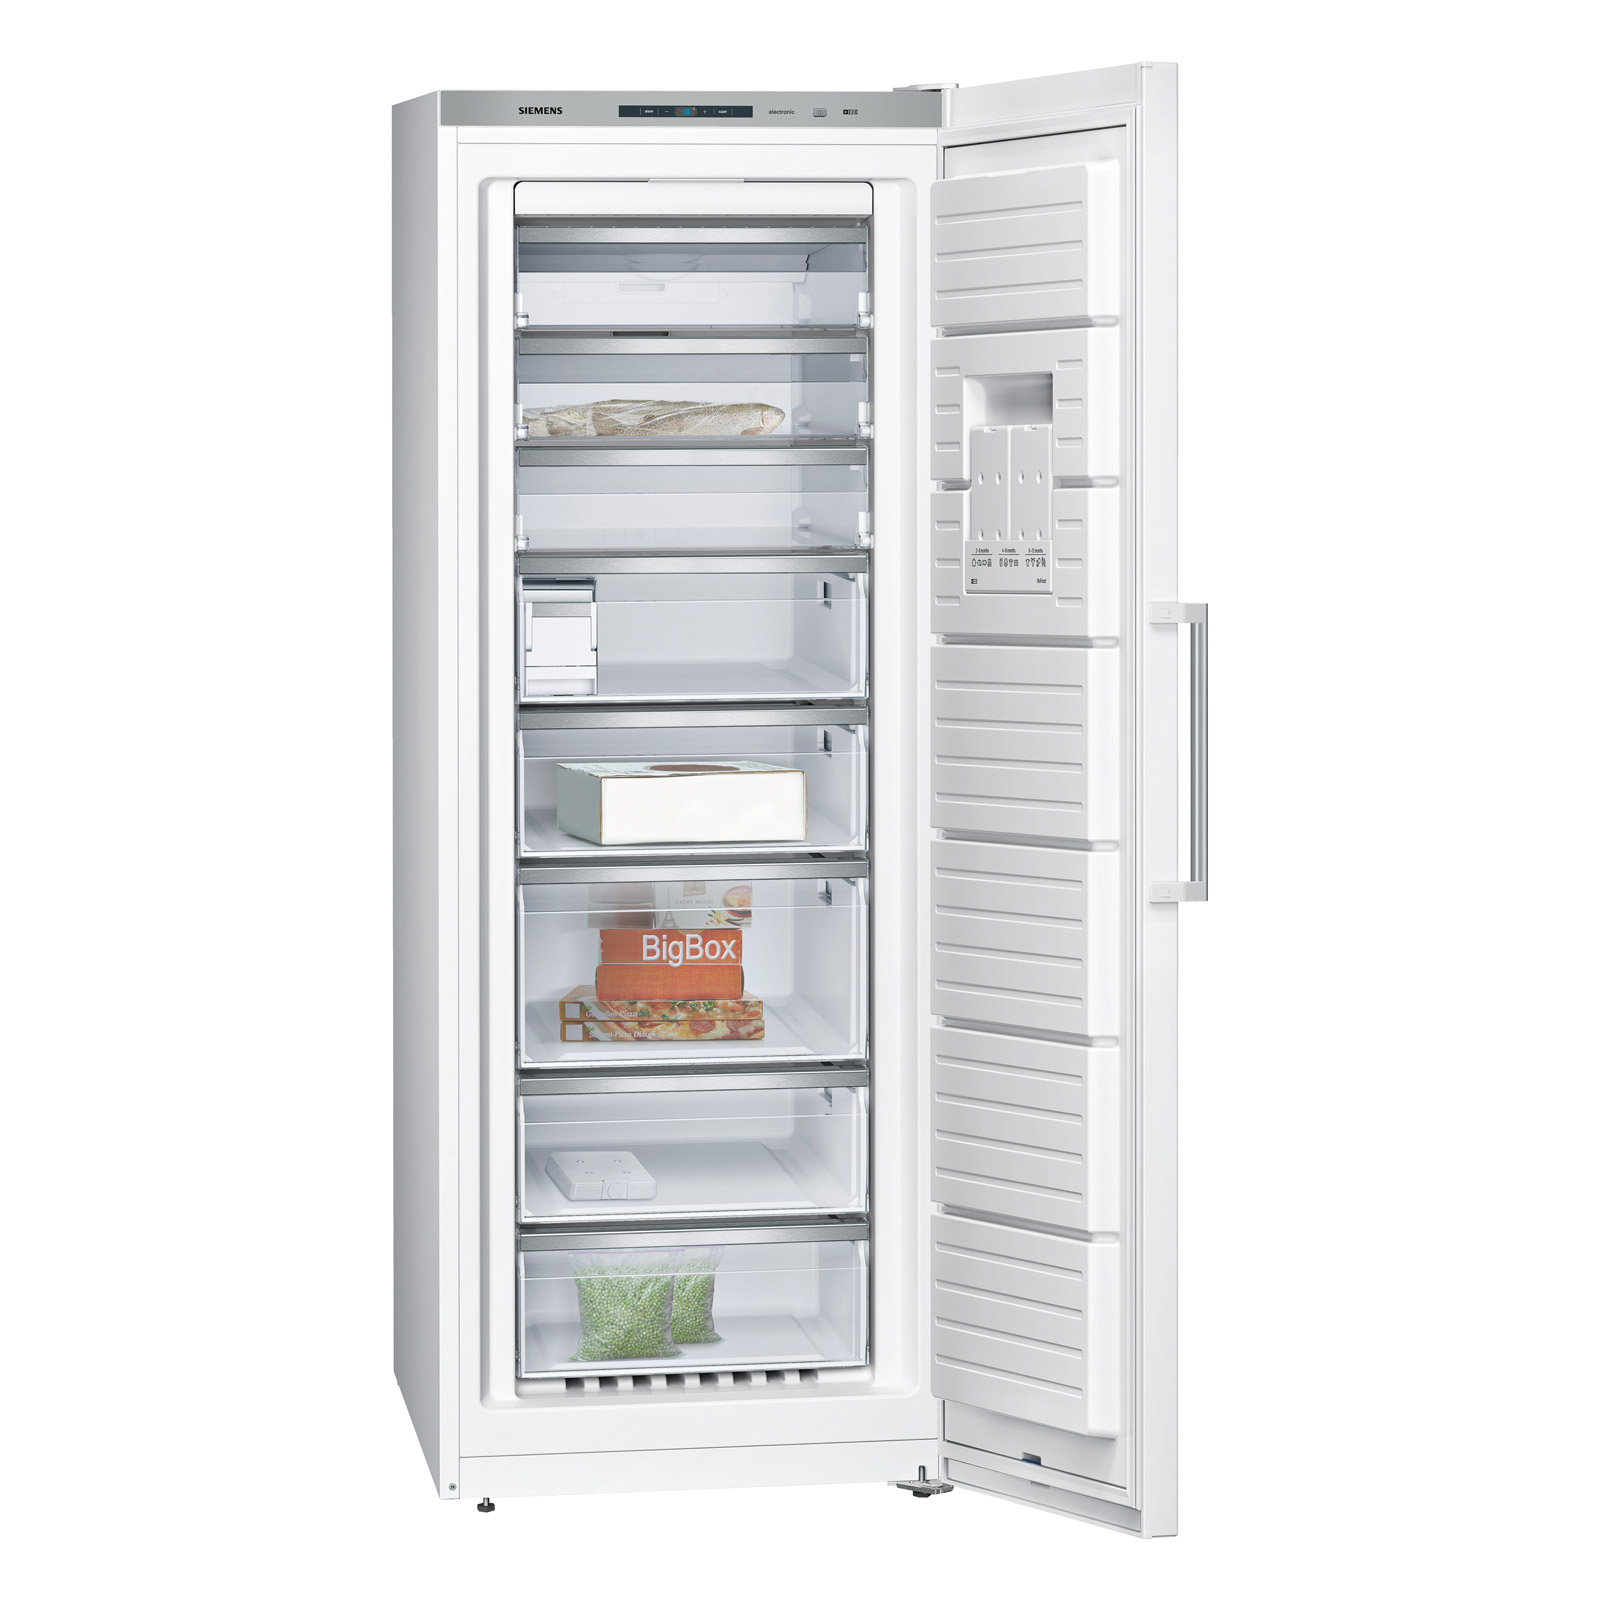 siemens gs58naw41 nofrost upright freezer in white a rated